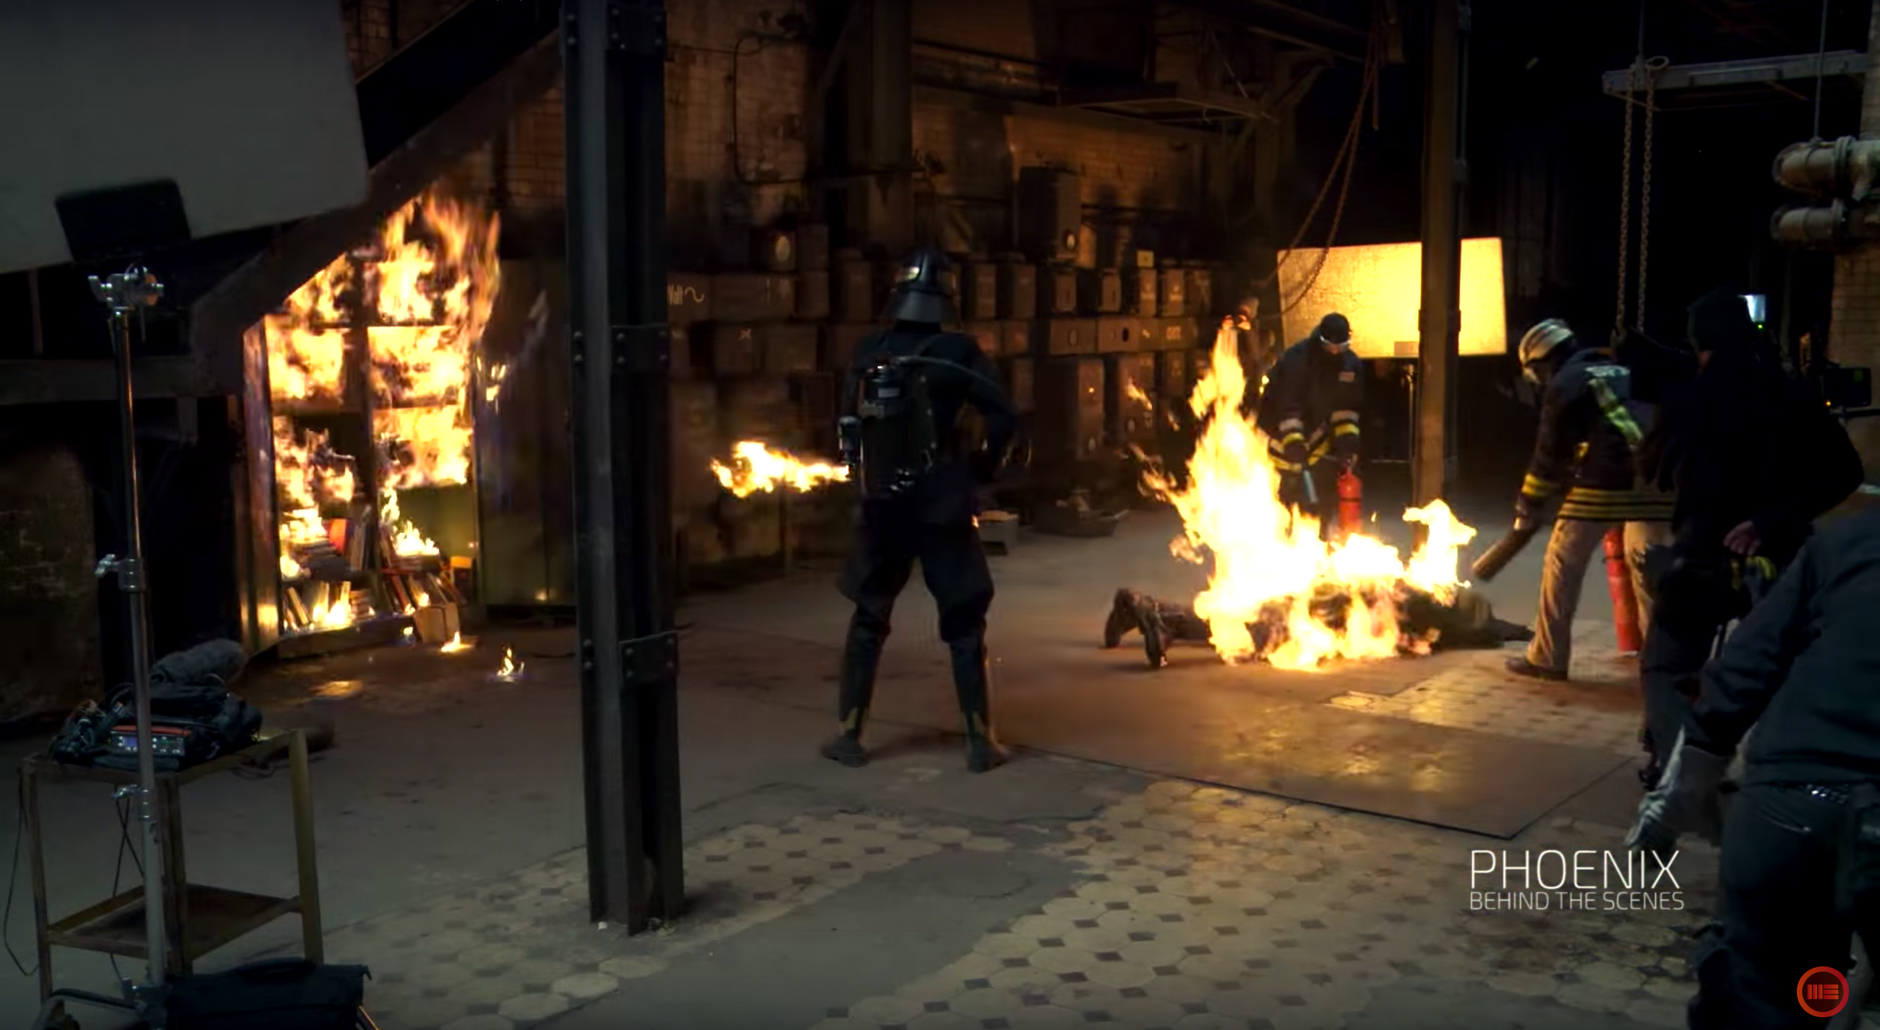 mg action, martin goeres, to serve the story, sfx, feuer